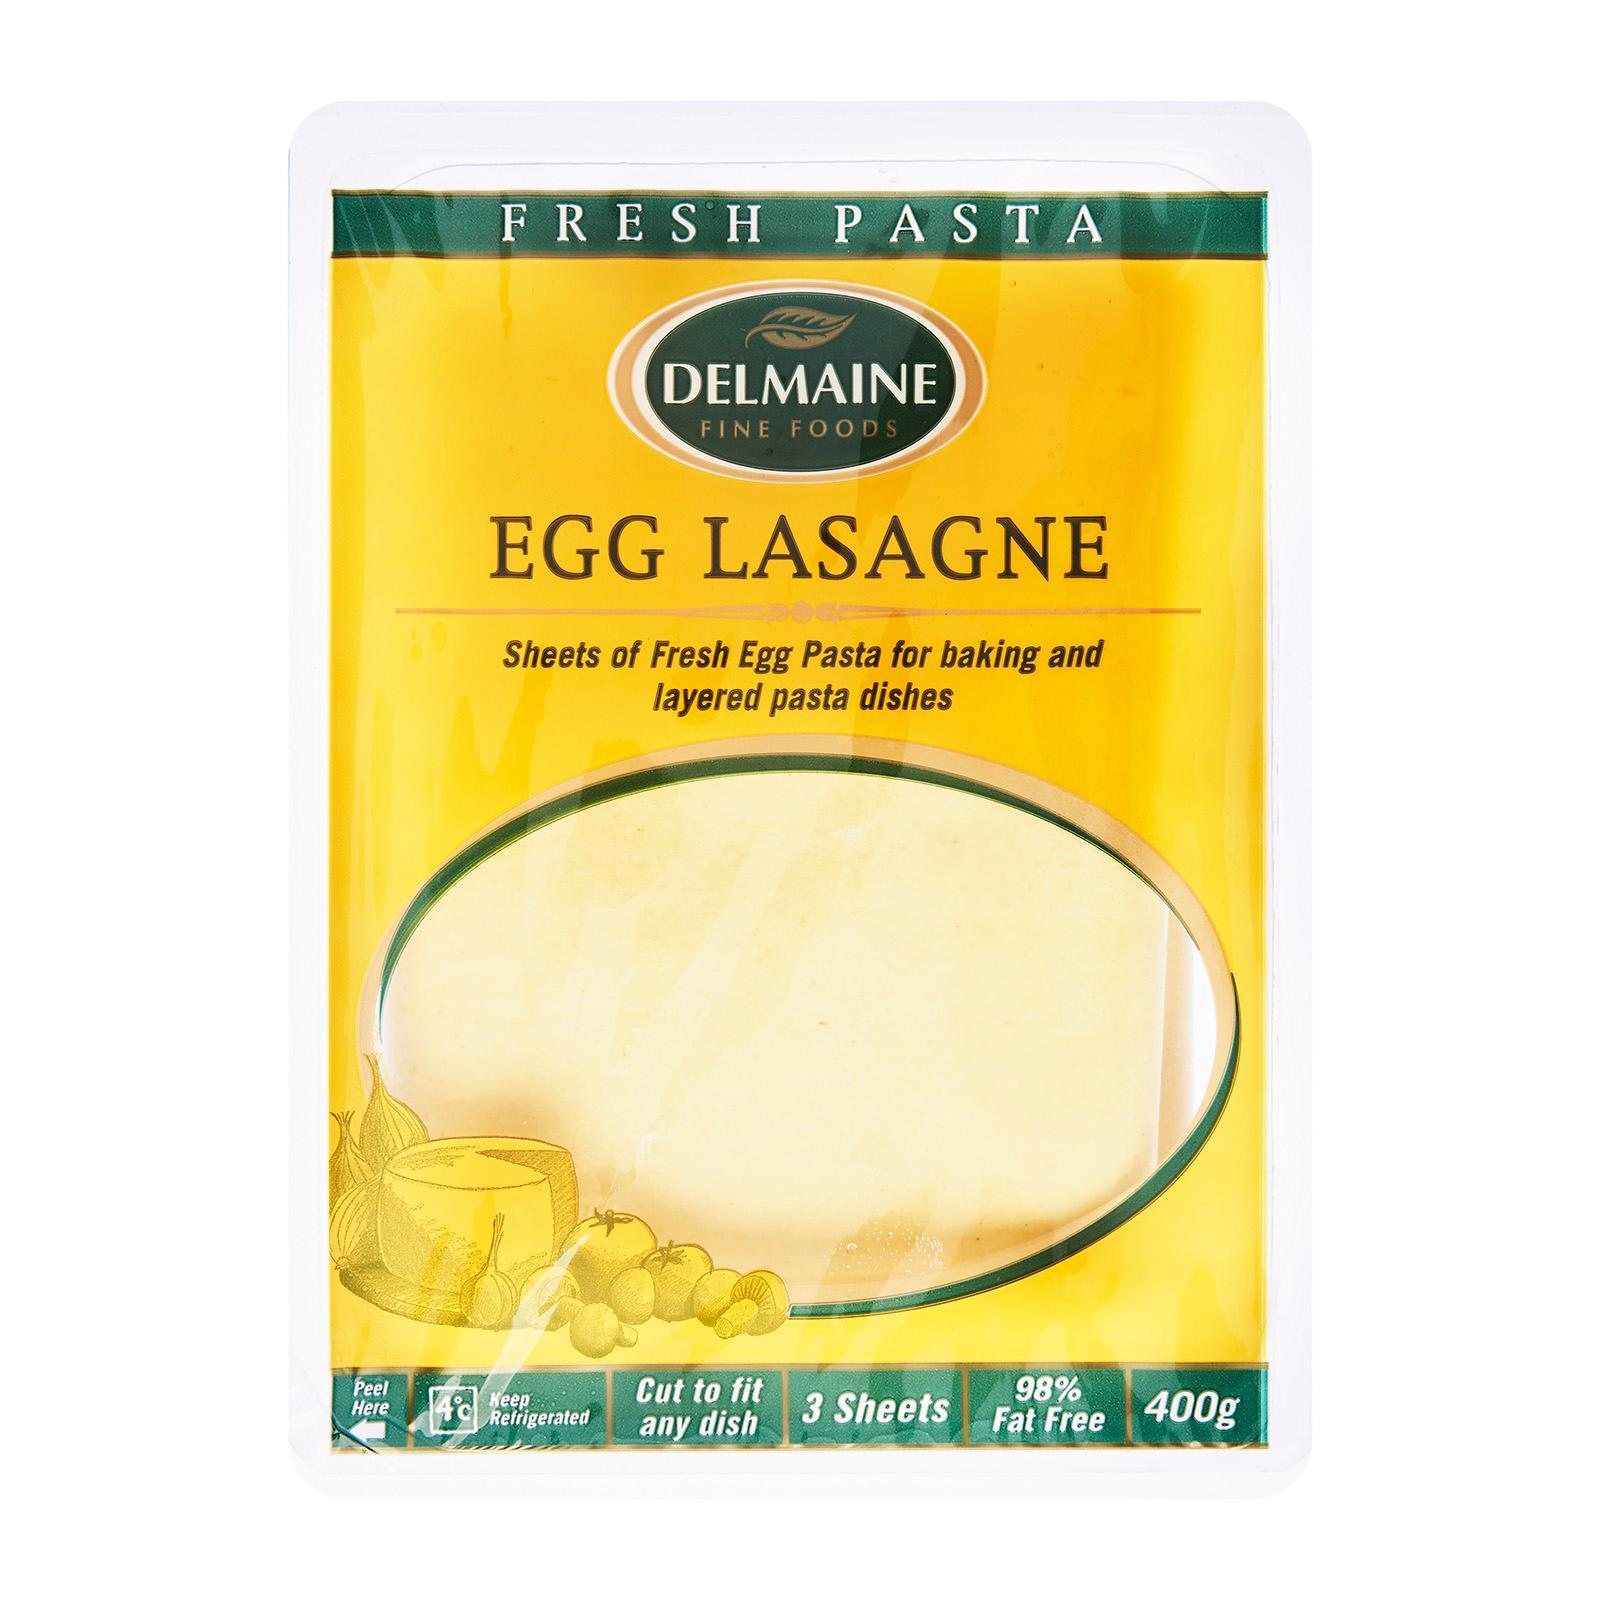 Delmaine Egg Lasagne Sheets By Redmart.